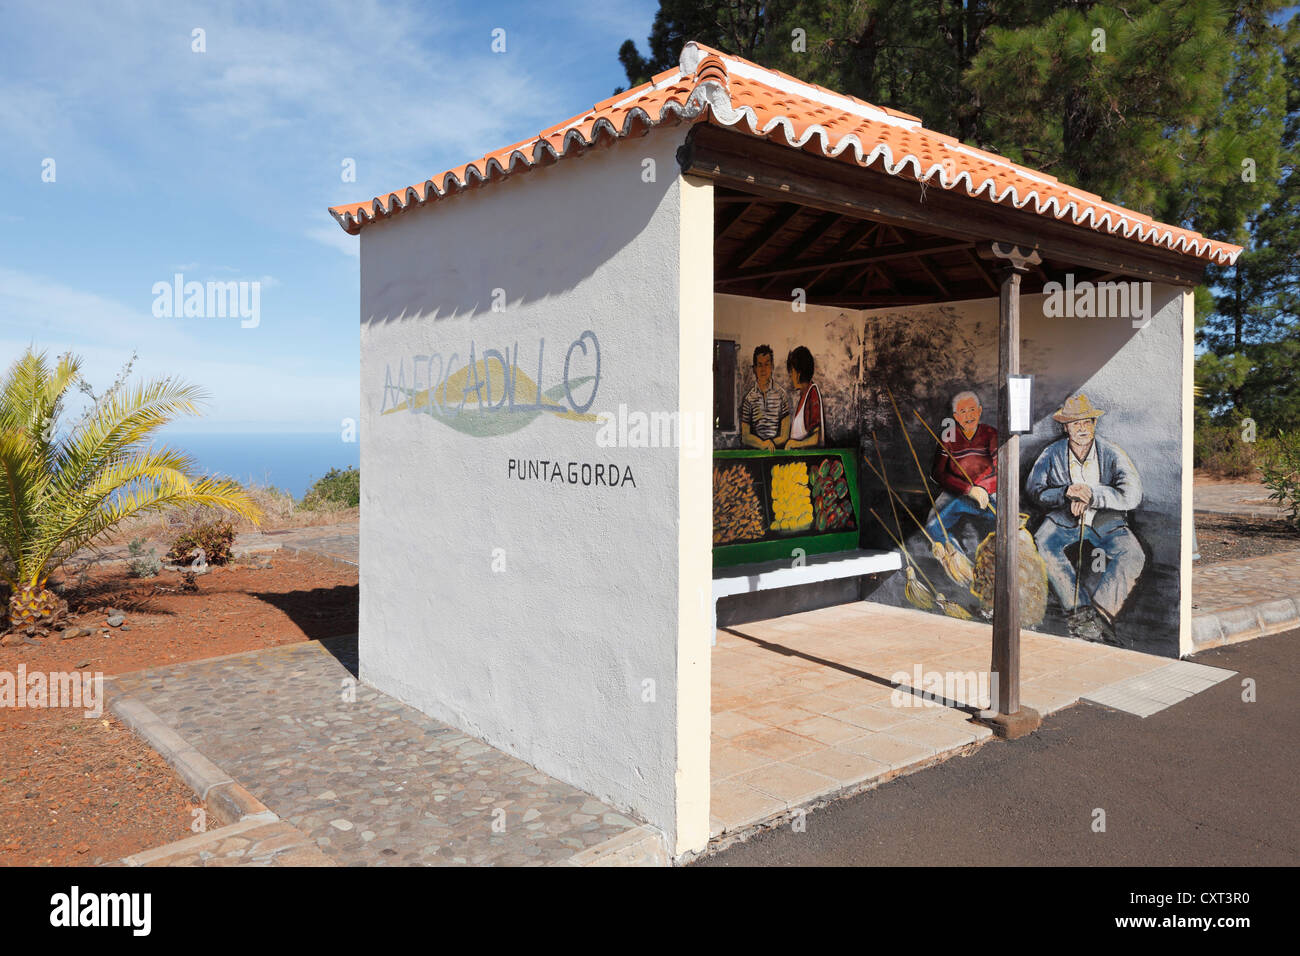 Painting by Goretti in a bus shelters, Punta Gorda, La Palma, Canary Islands, Spain, Europe, PublicGround - Stock Image